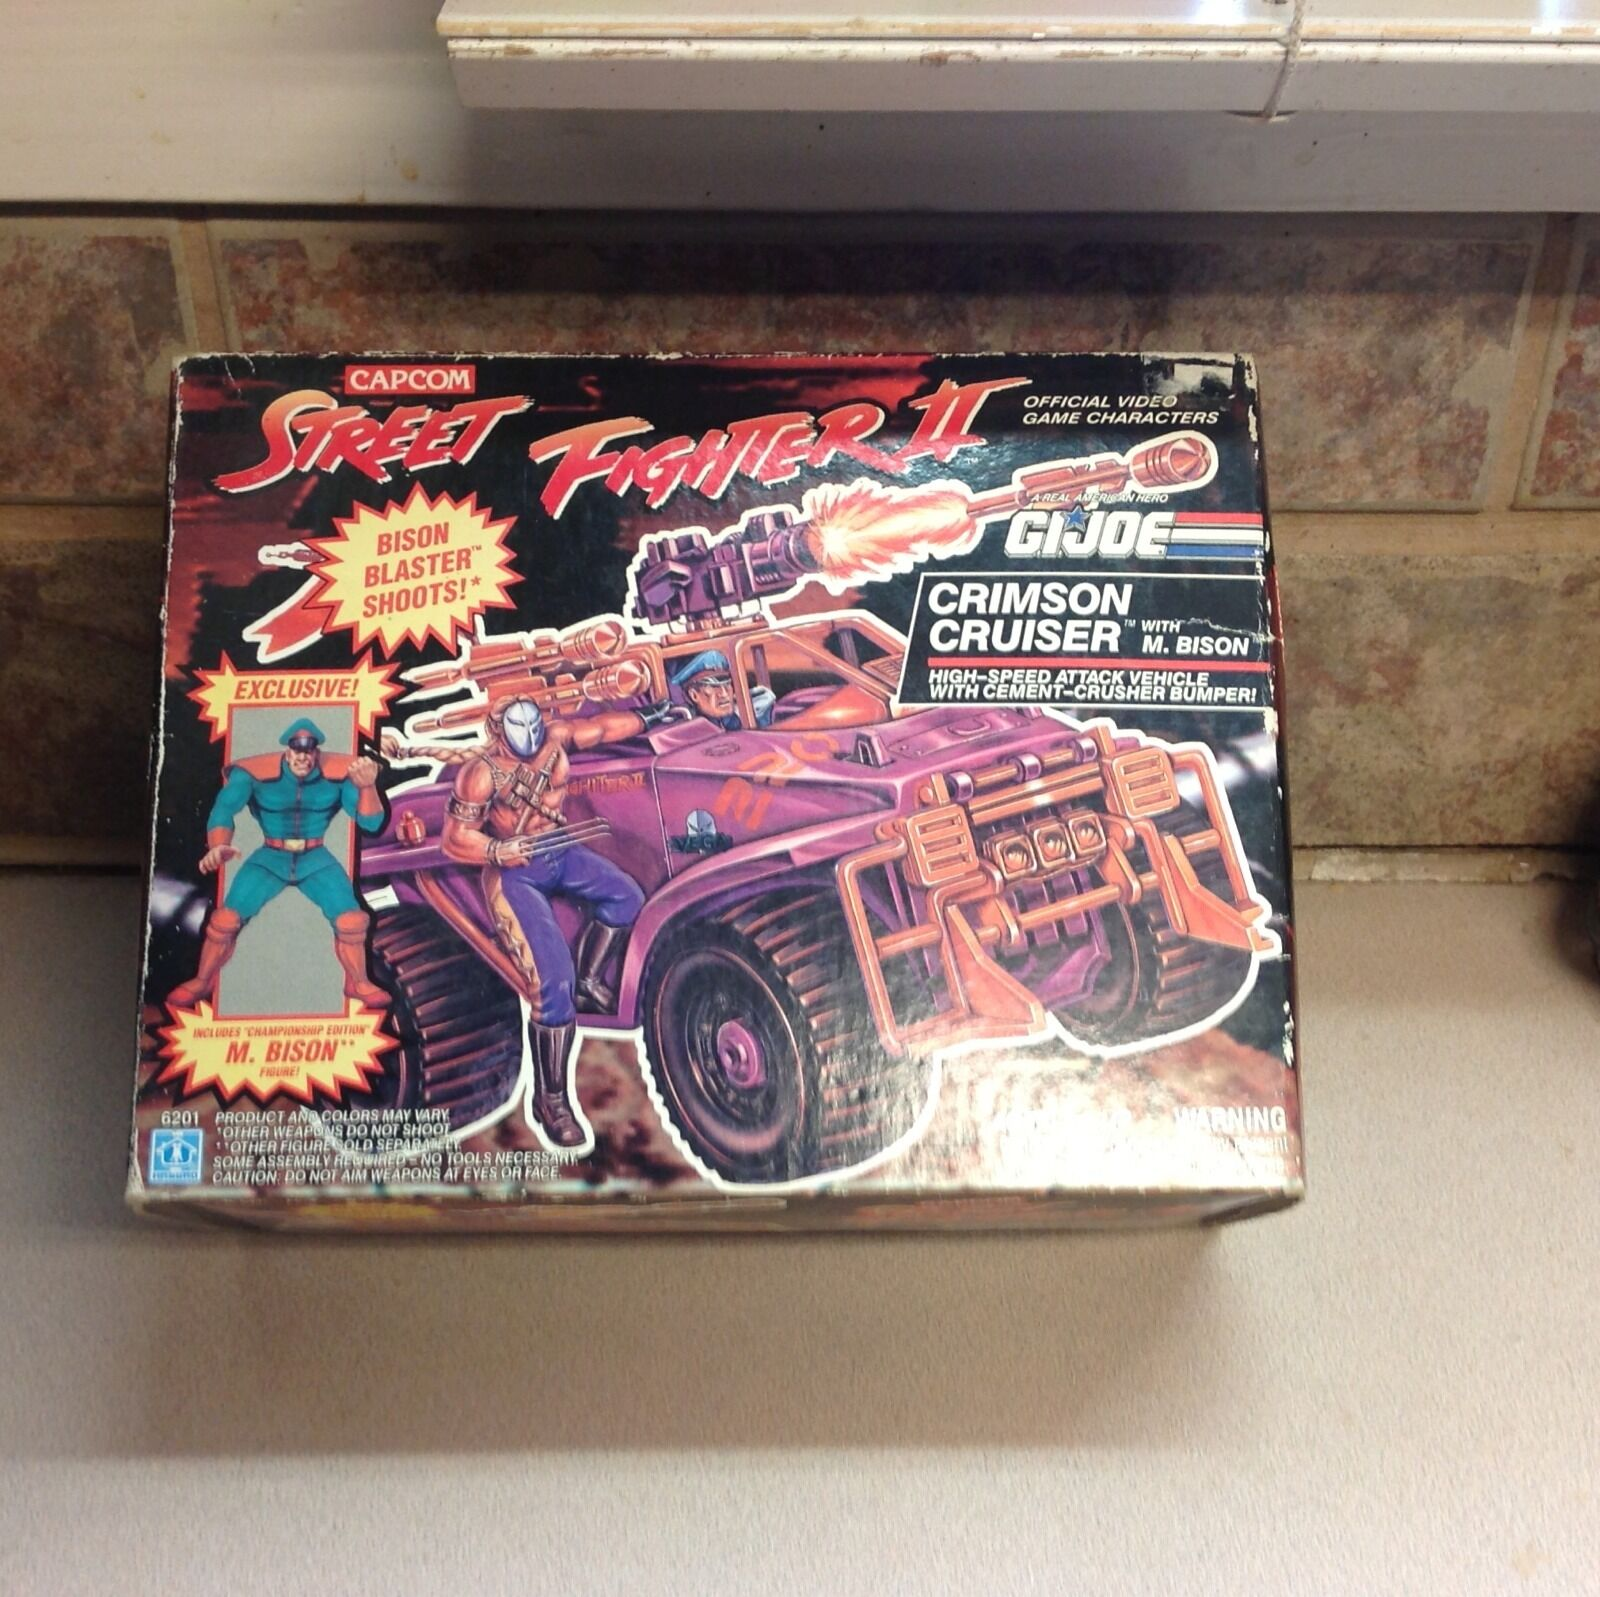 G I Joe Street Fighter 2 new in box  CRimson cruiser W  M. Bison